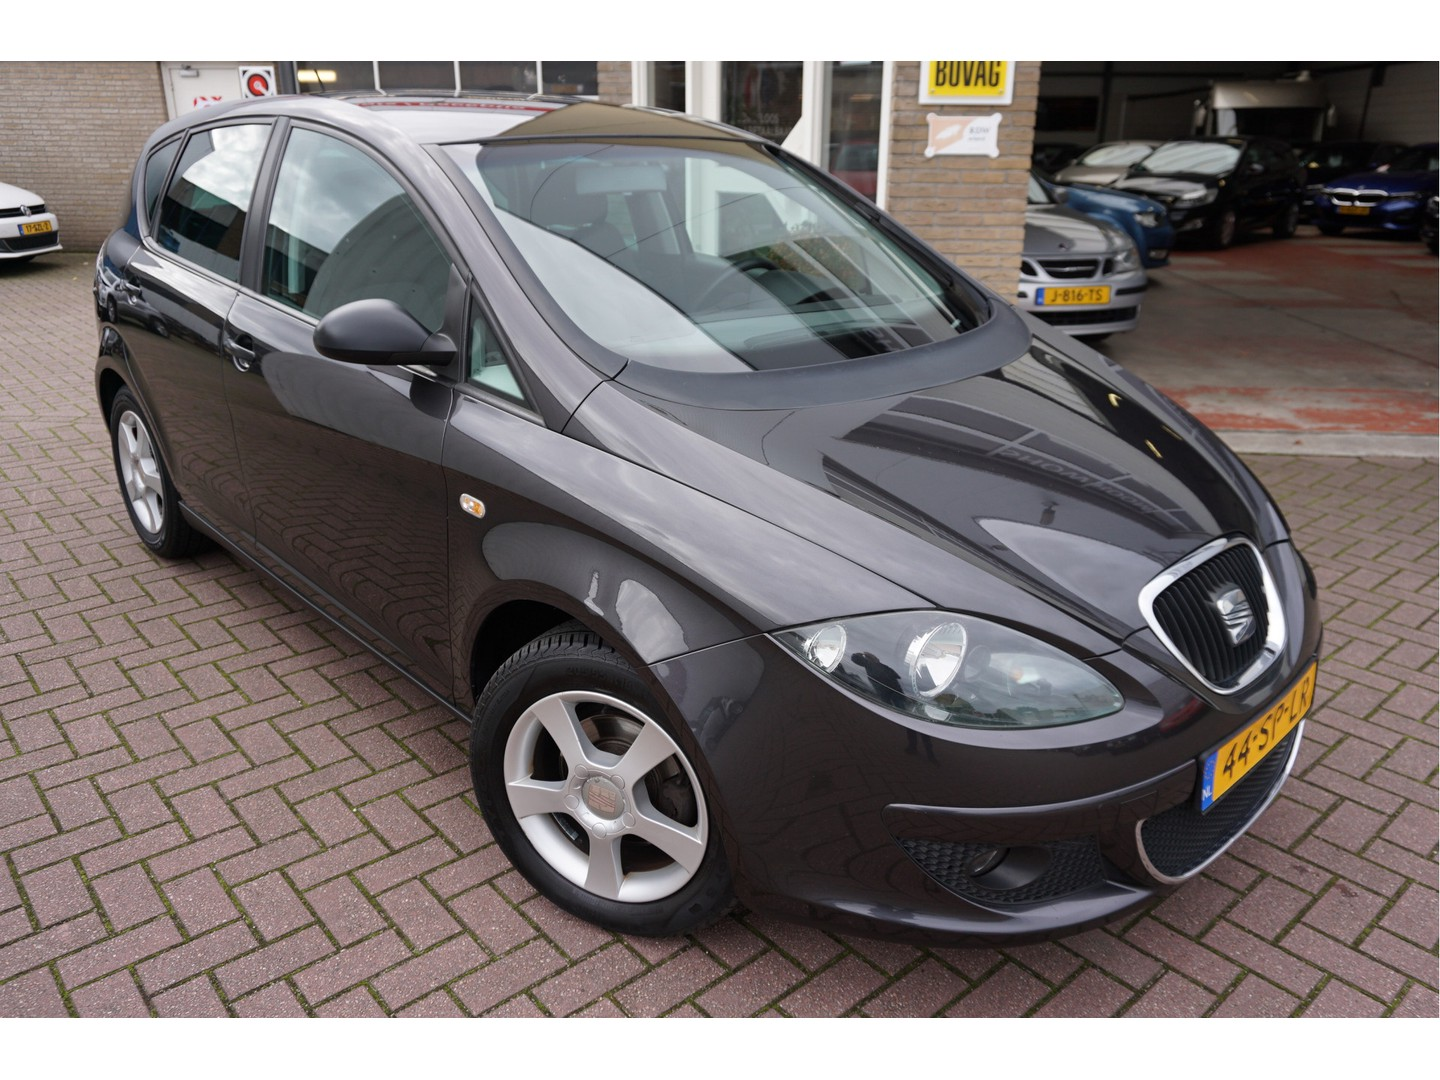 Seat Altea 1.6i 75kw emotion